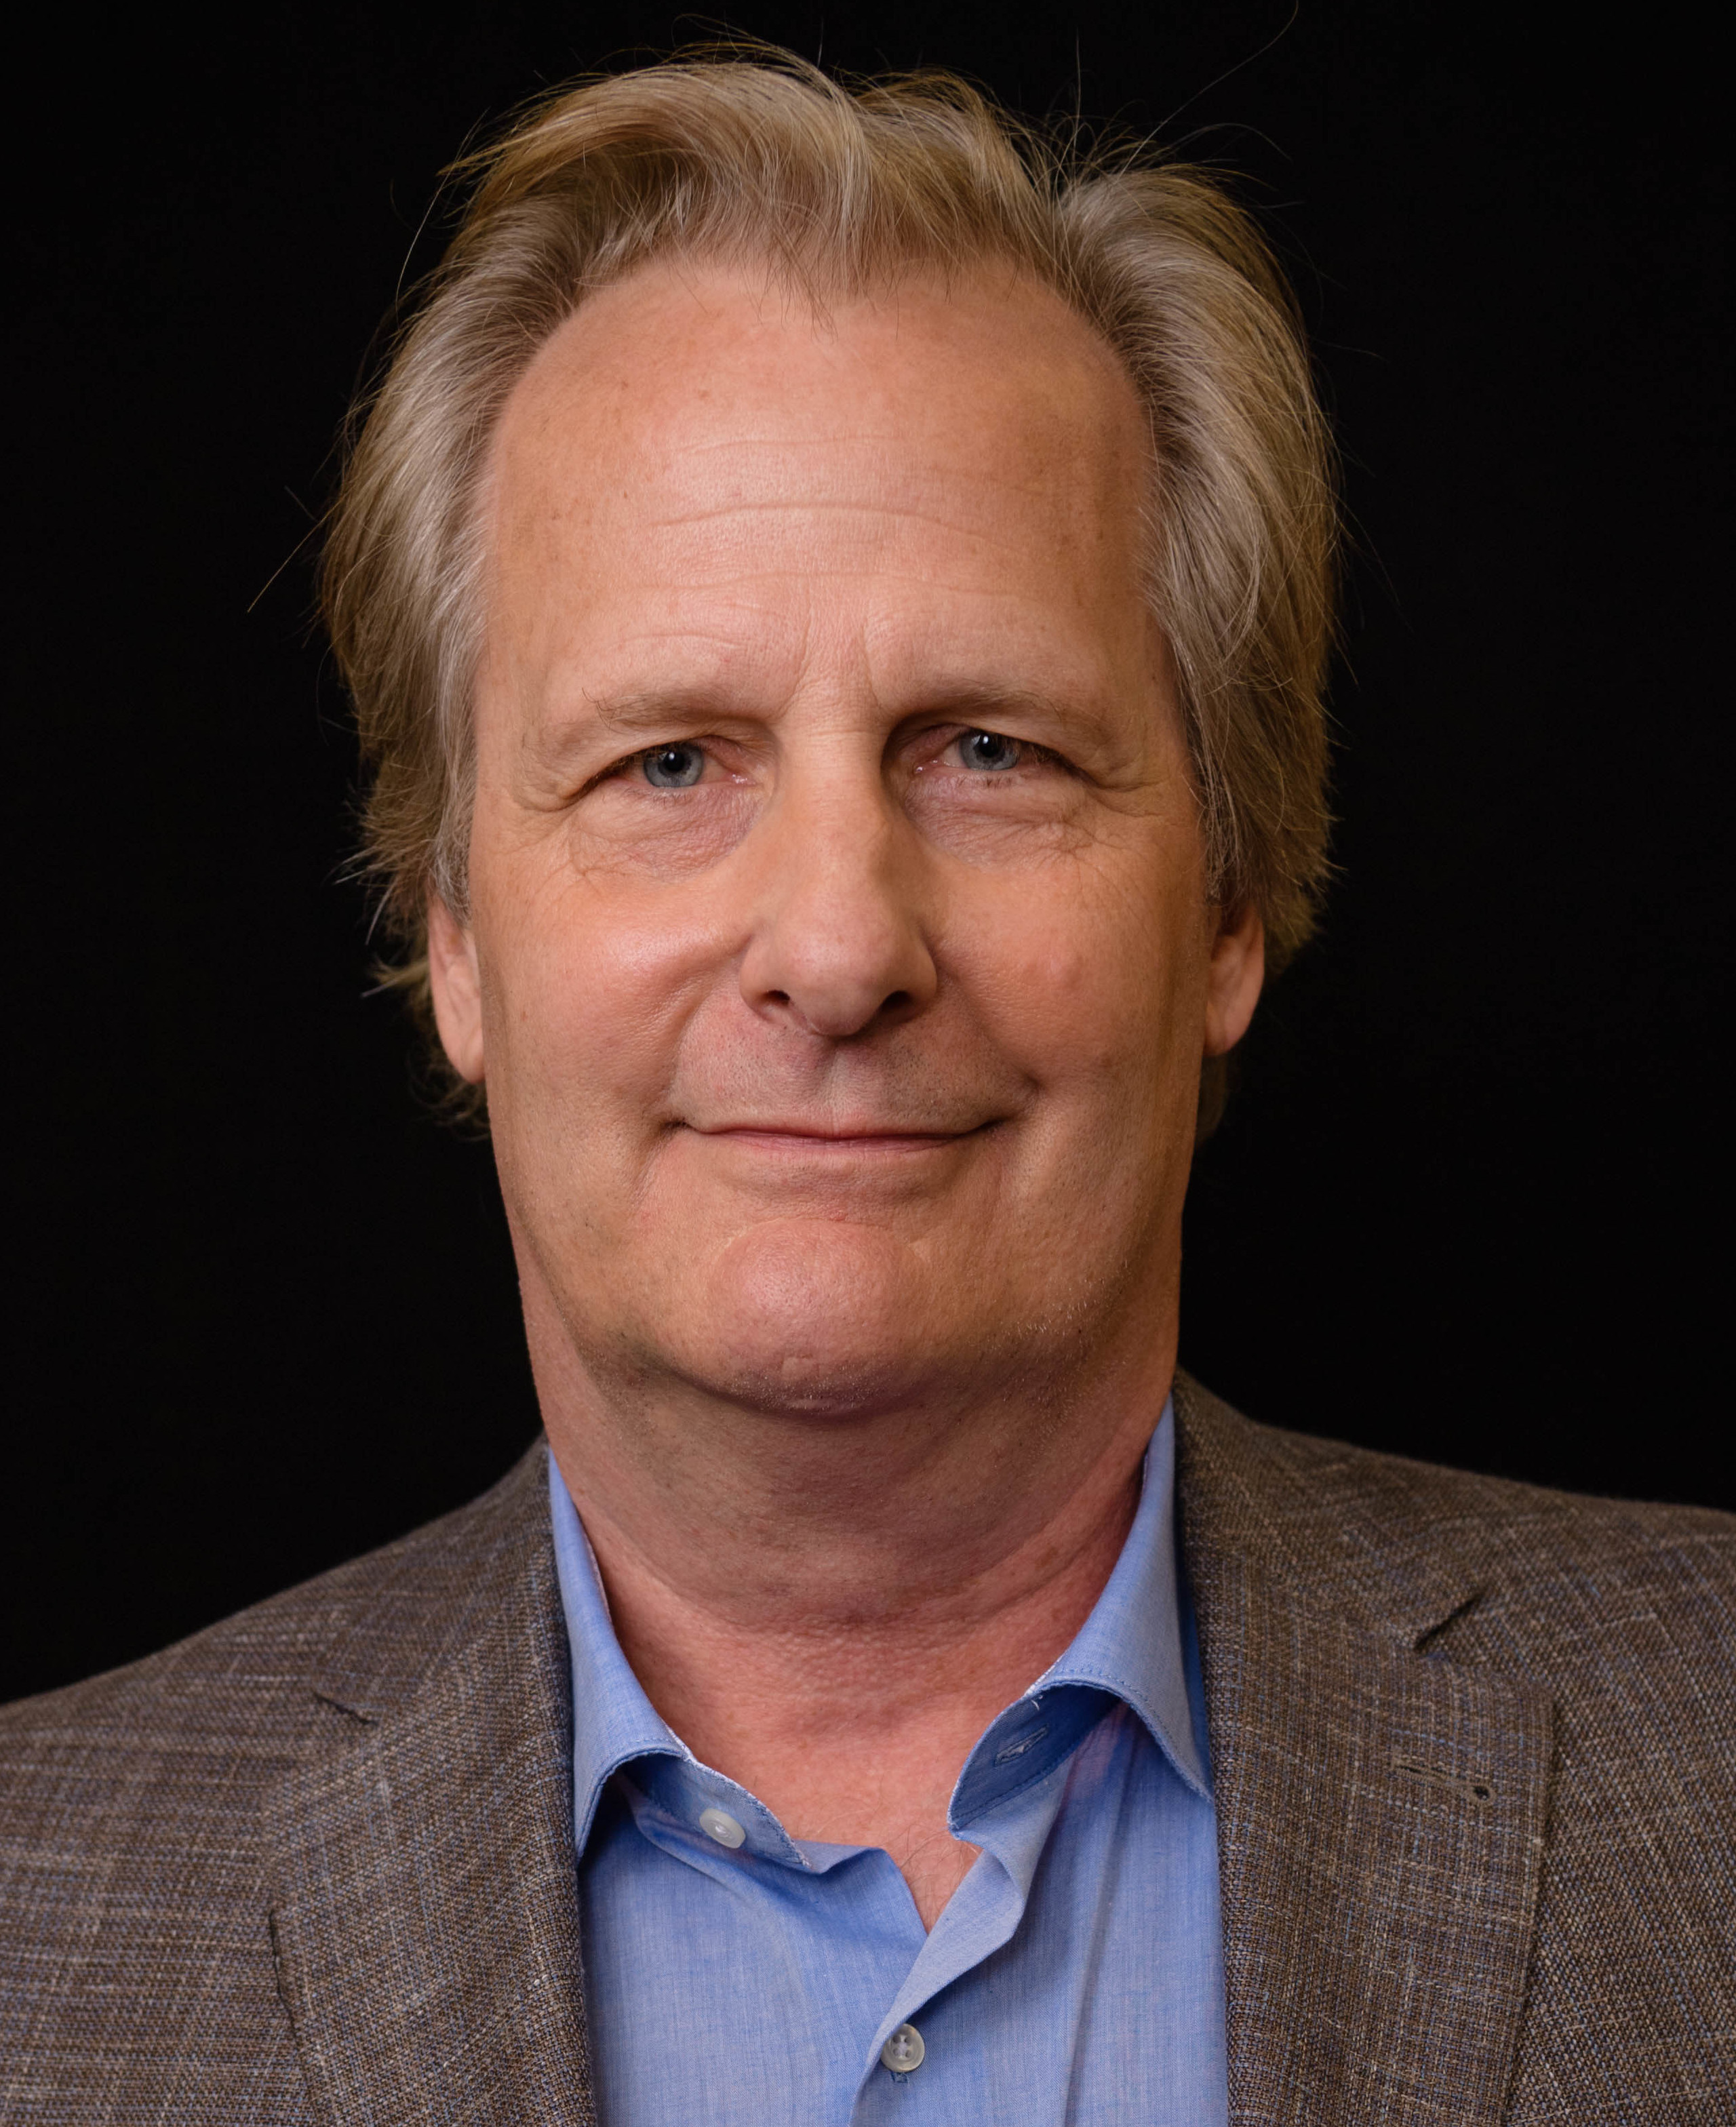 The 63-year old son of father Robert Lee Daniels and mother Marjorie J. Daniels Jeff Daniels in 2018 photo. Jeff Daniels earned a  million dollar salary - leaving the net worth at 45 million in 2018